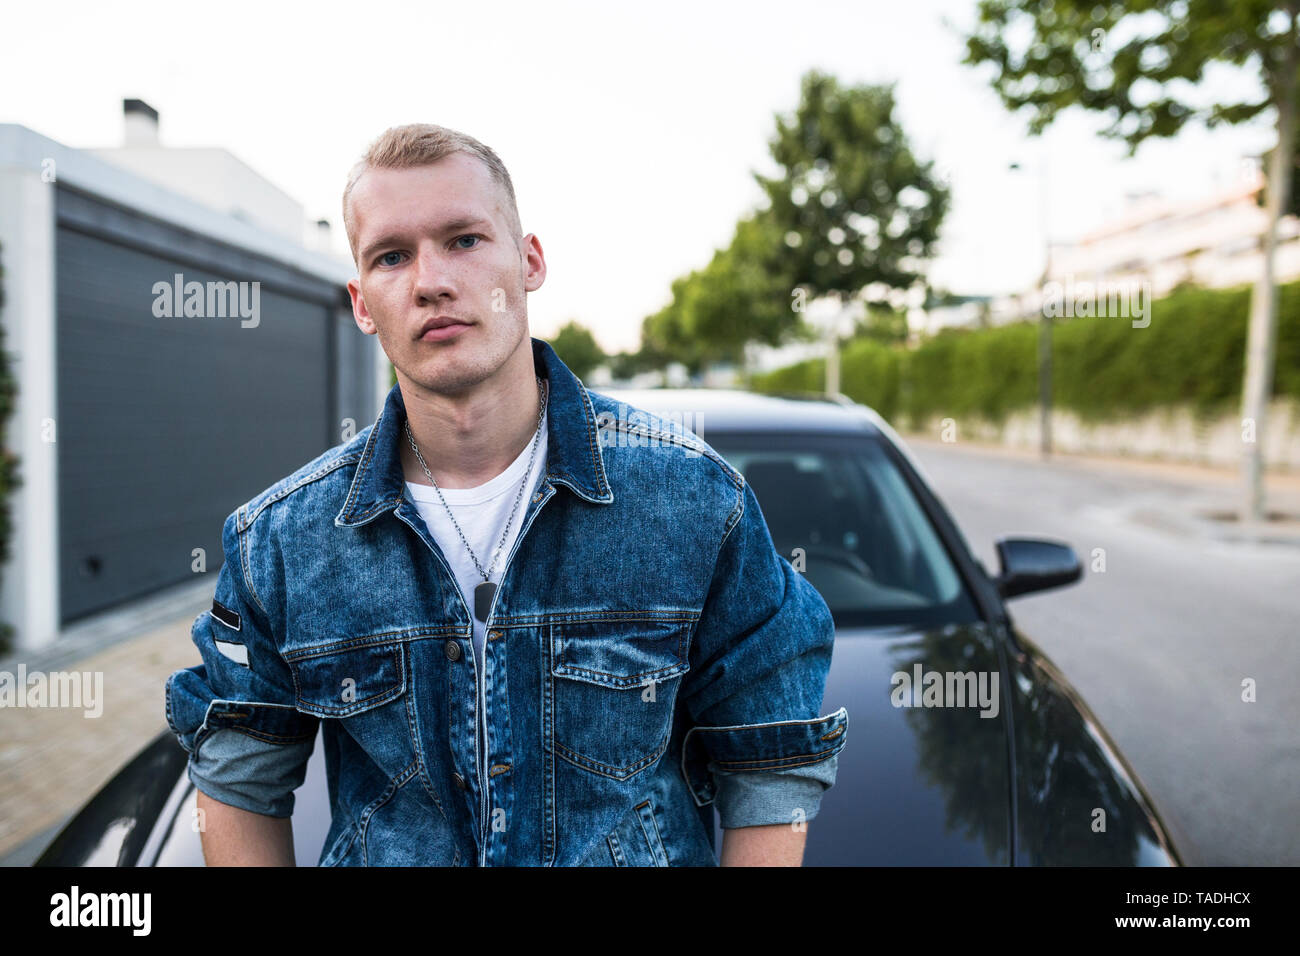 Portrait of young man in denim jacket standing in front of car - Stock Image